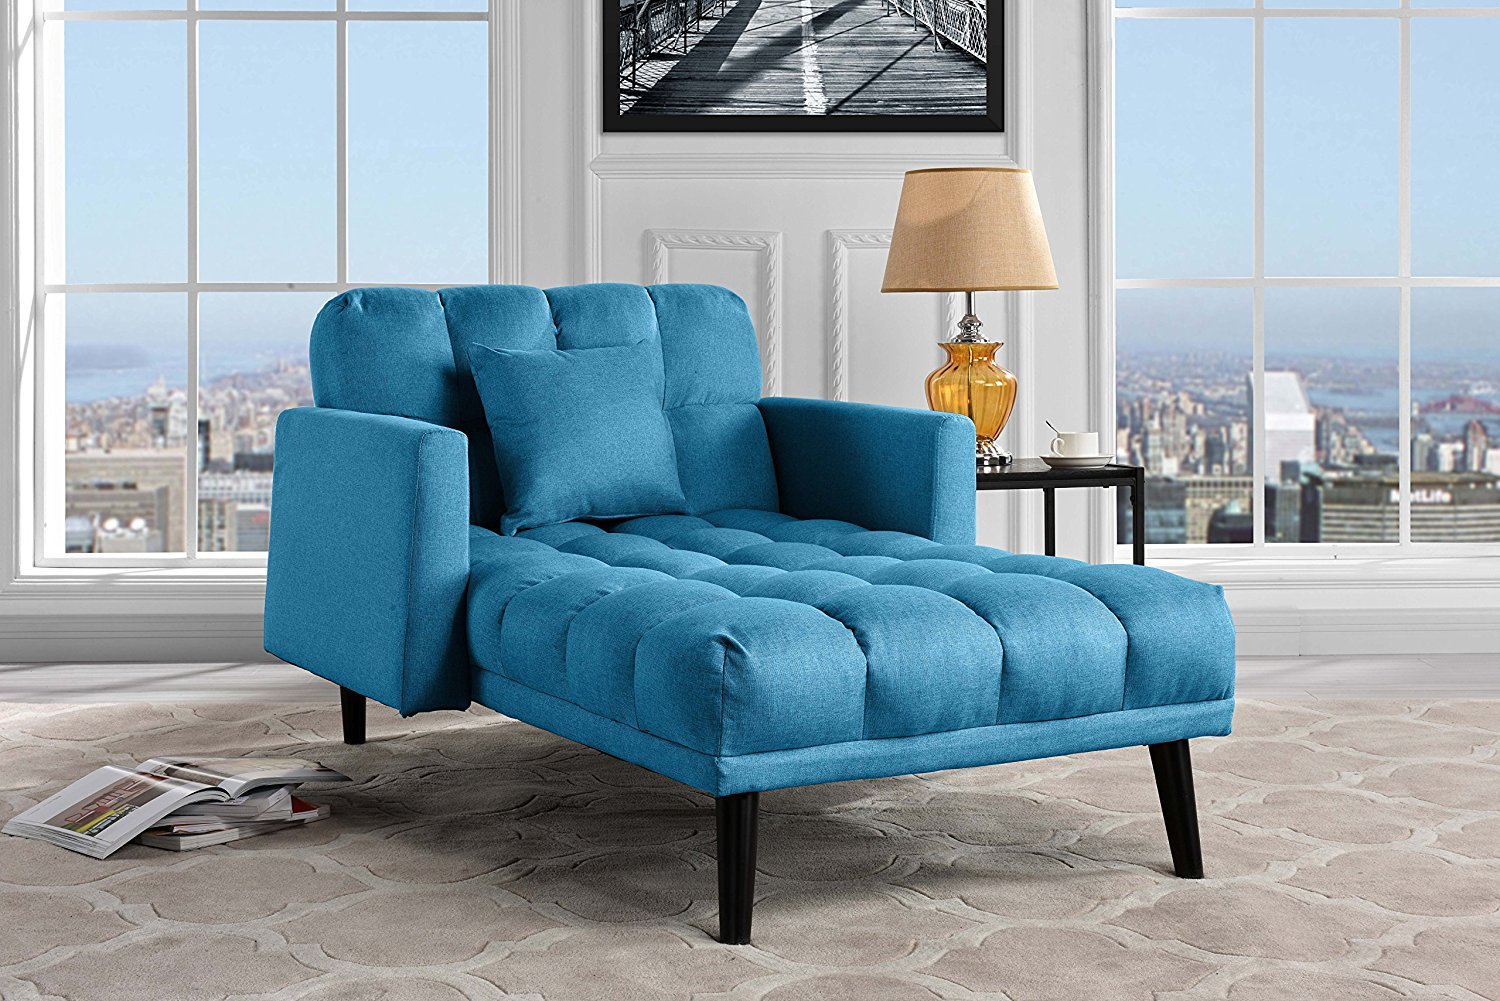 Sofamania Futon Cheap Futon Chaise Lounge Find Futon Chaise Lounge Deals On Line